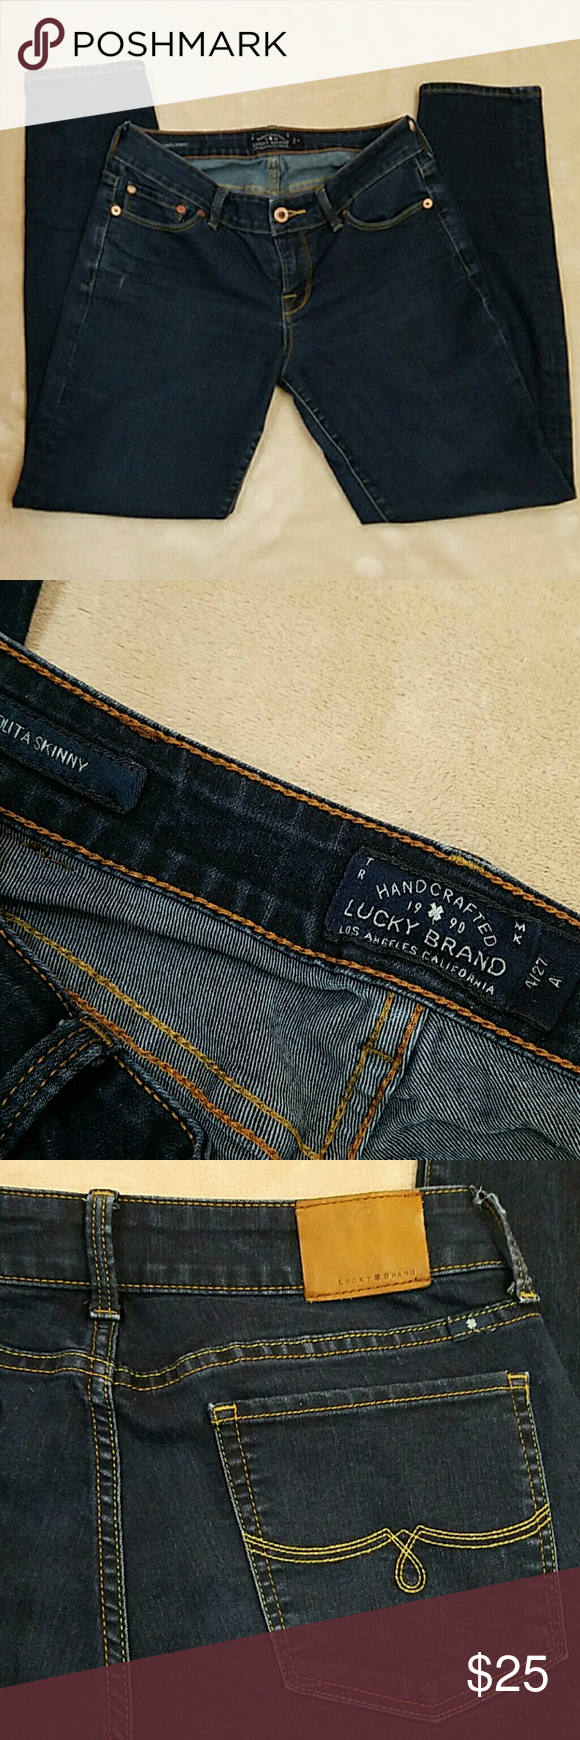 """Lucky Brand Jeans Lolita Skinny. Size 4/27 . Darker blue wash. Inseam is approx 28"""". Used a few times. Pants seem to have a seam flaw. Please note left leg seam turns outward (please see last picture). Cannot see worn inside boots. Fabric has some stretch to it. Make offer. Lucky Brand Jeans Skinny"""